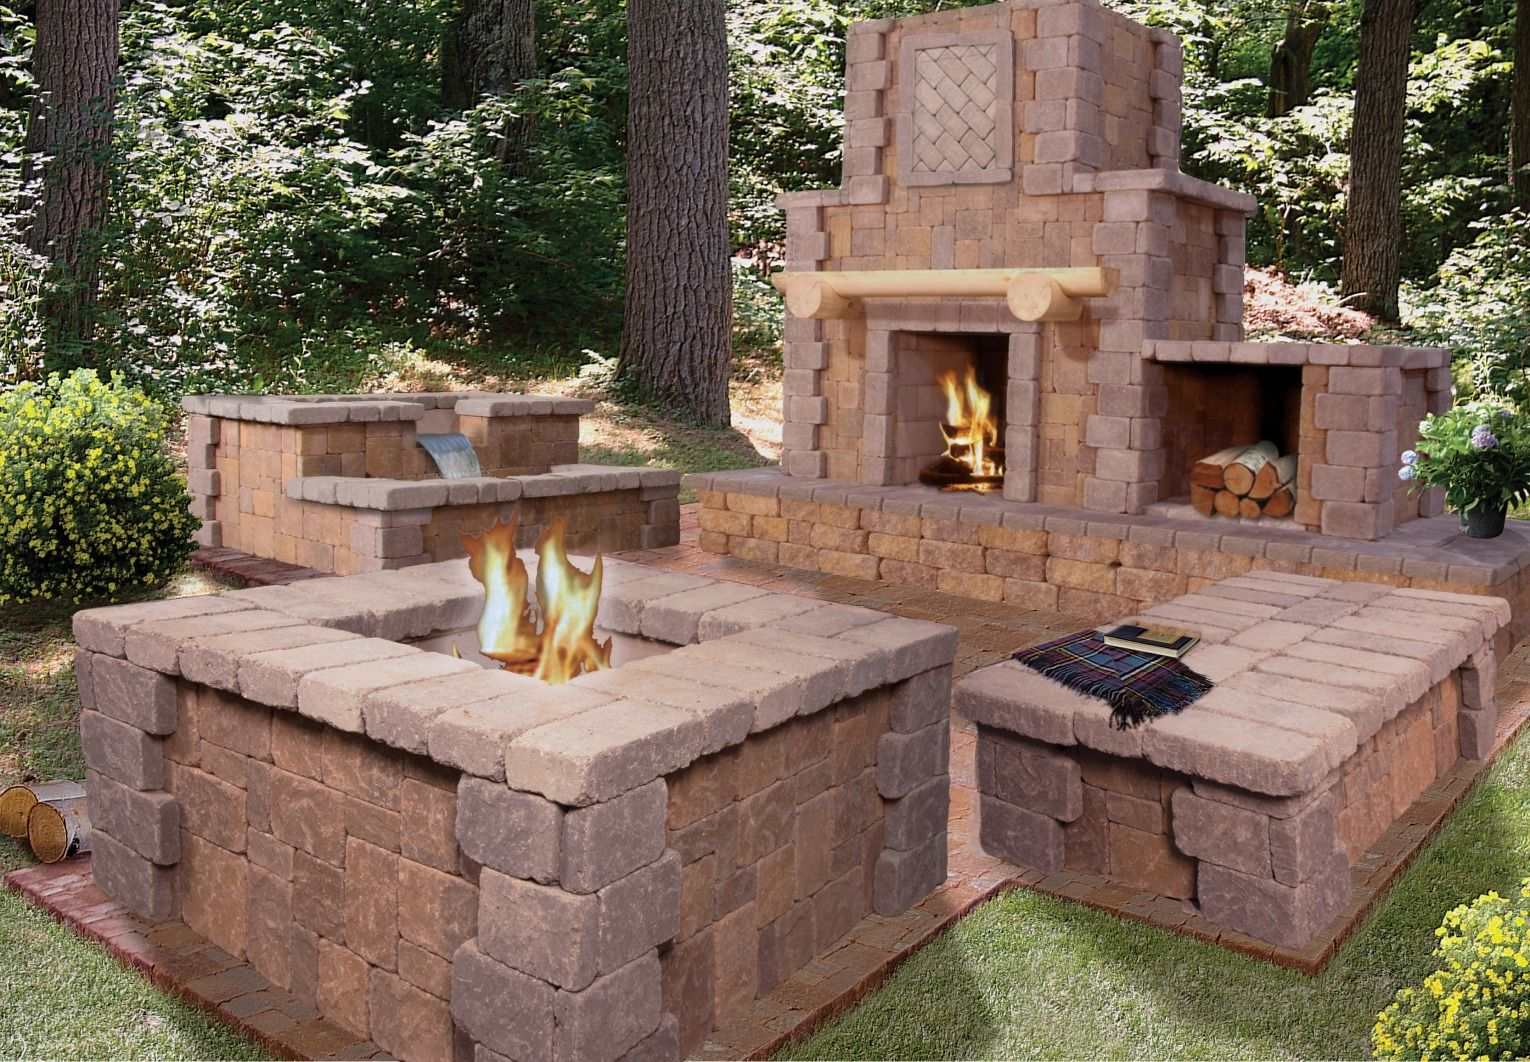 Make a bold statement in your backyard! The Cantwell